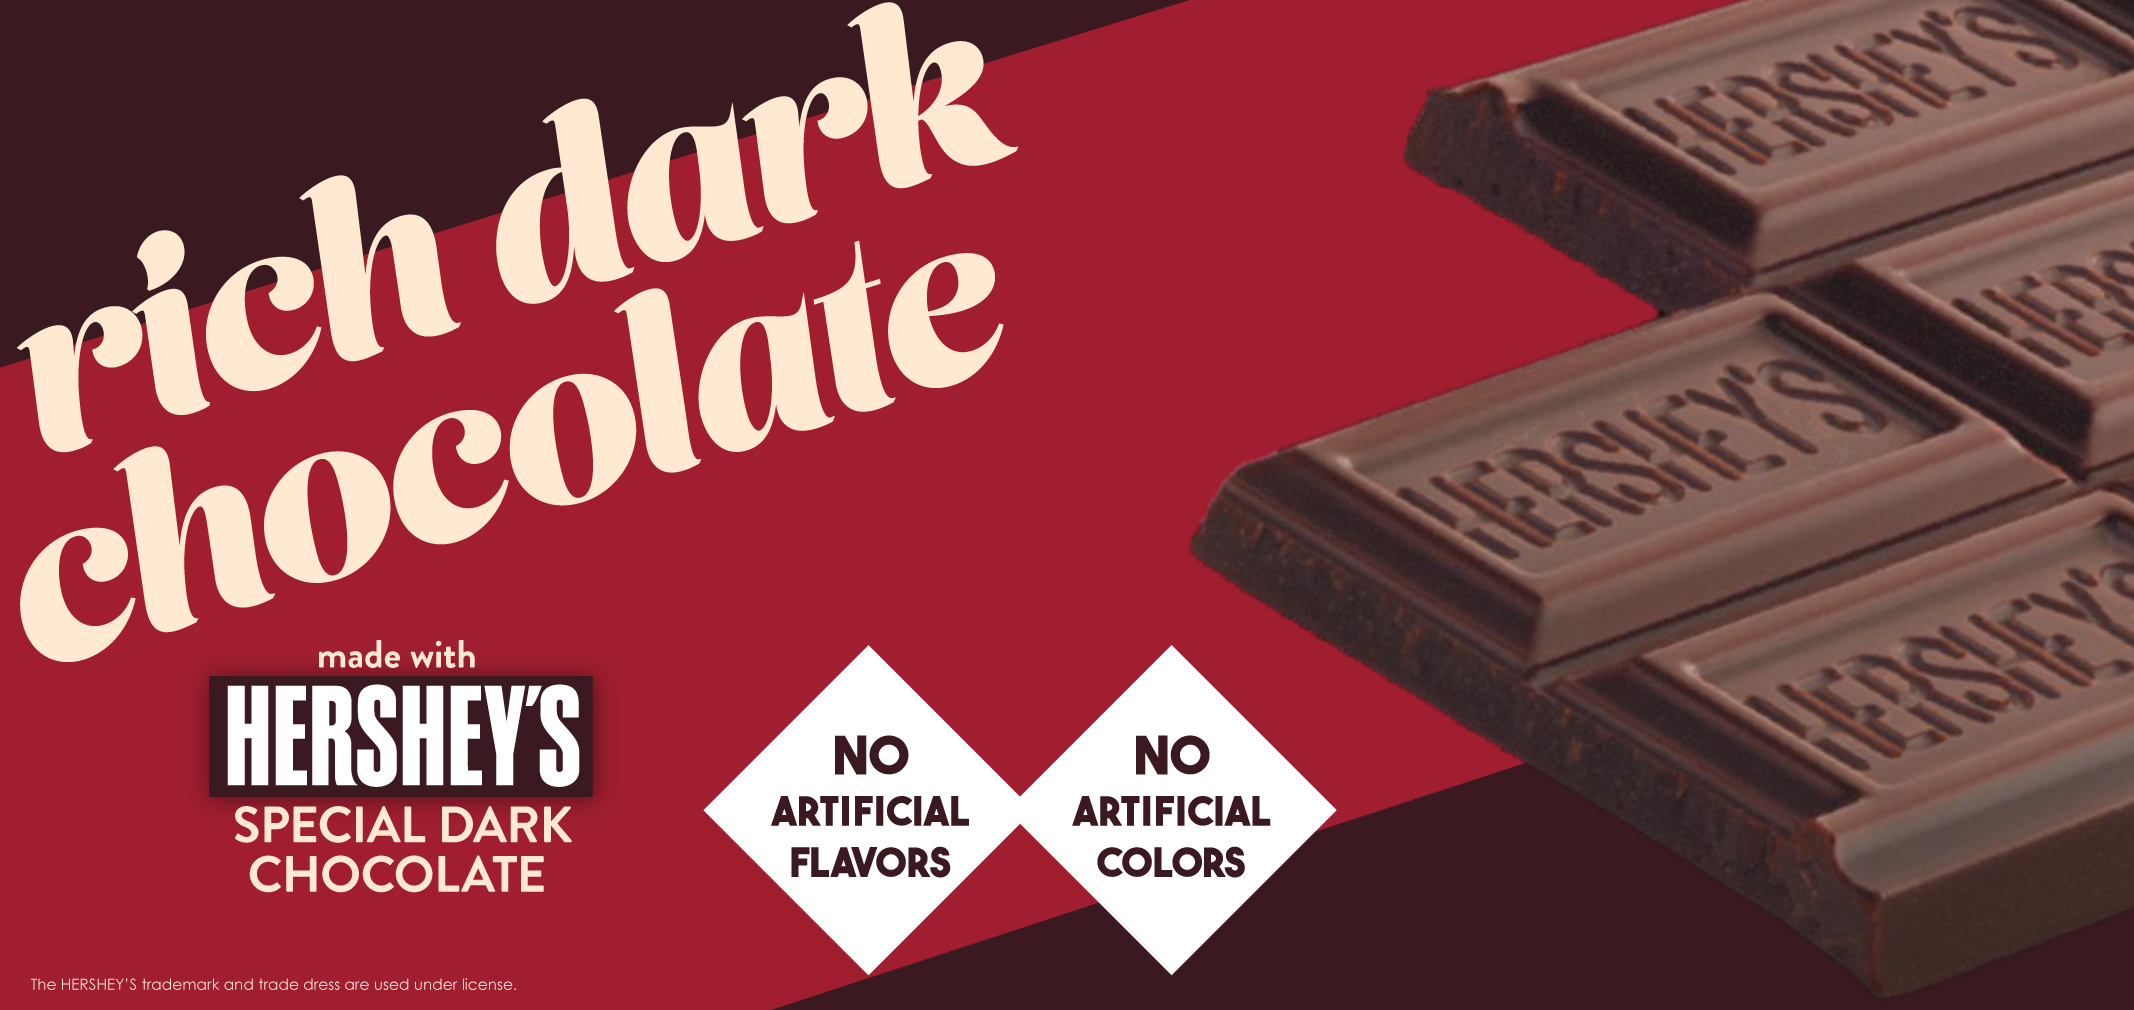 rich dark chocolate made with Hershey's® Special Dark chocolate  label image